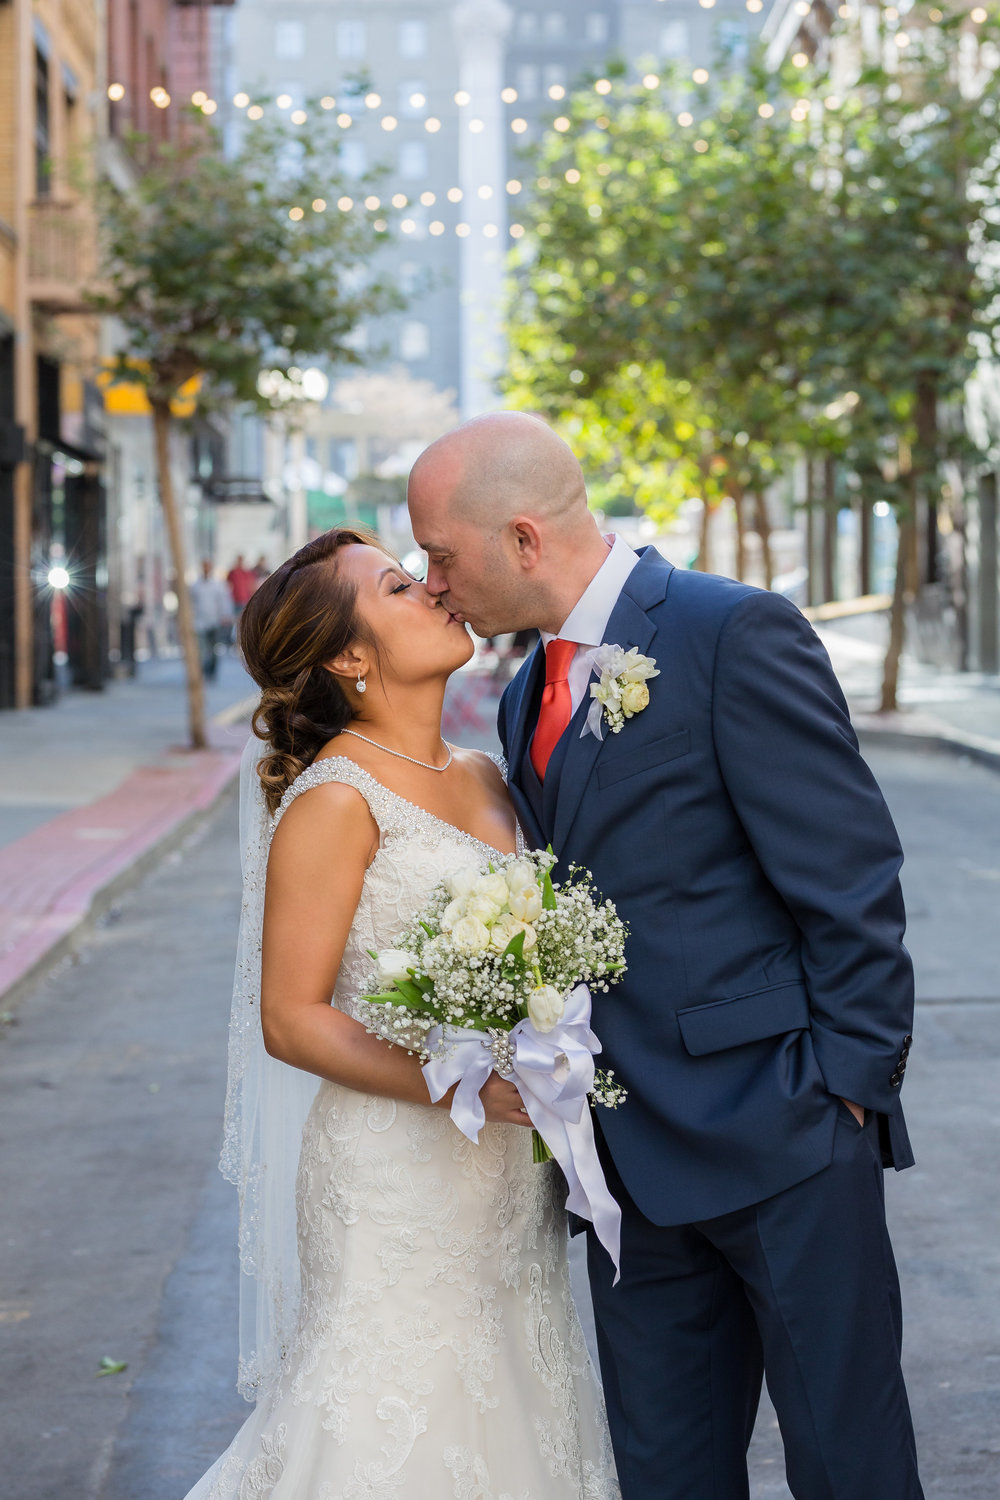 union square wedding photography-8.jpg